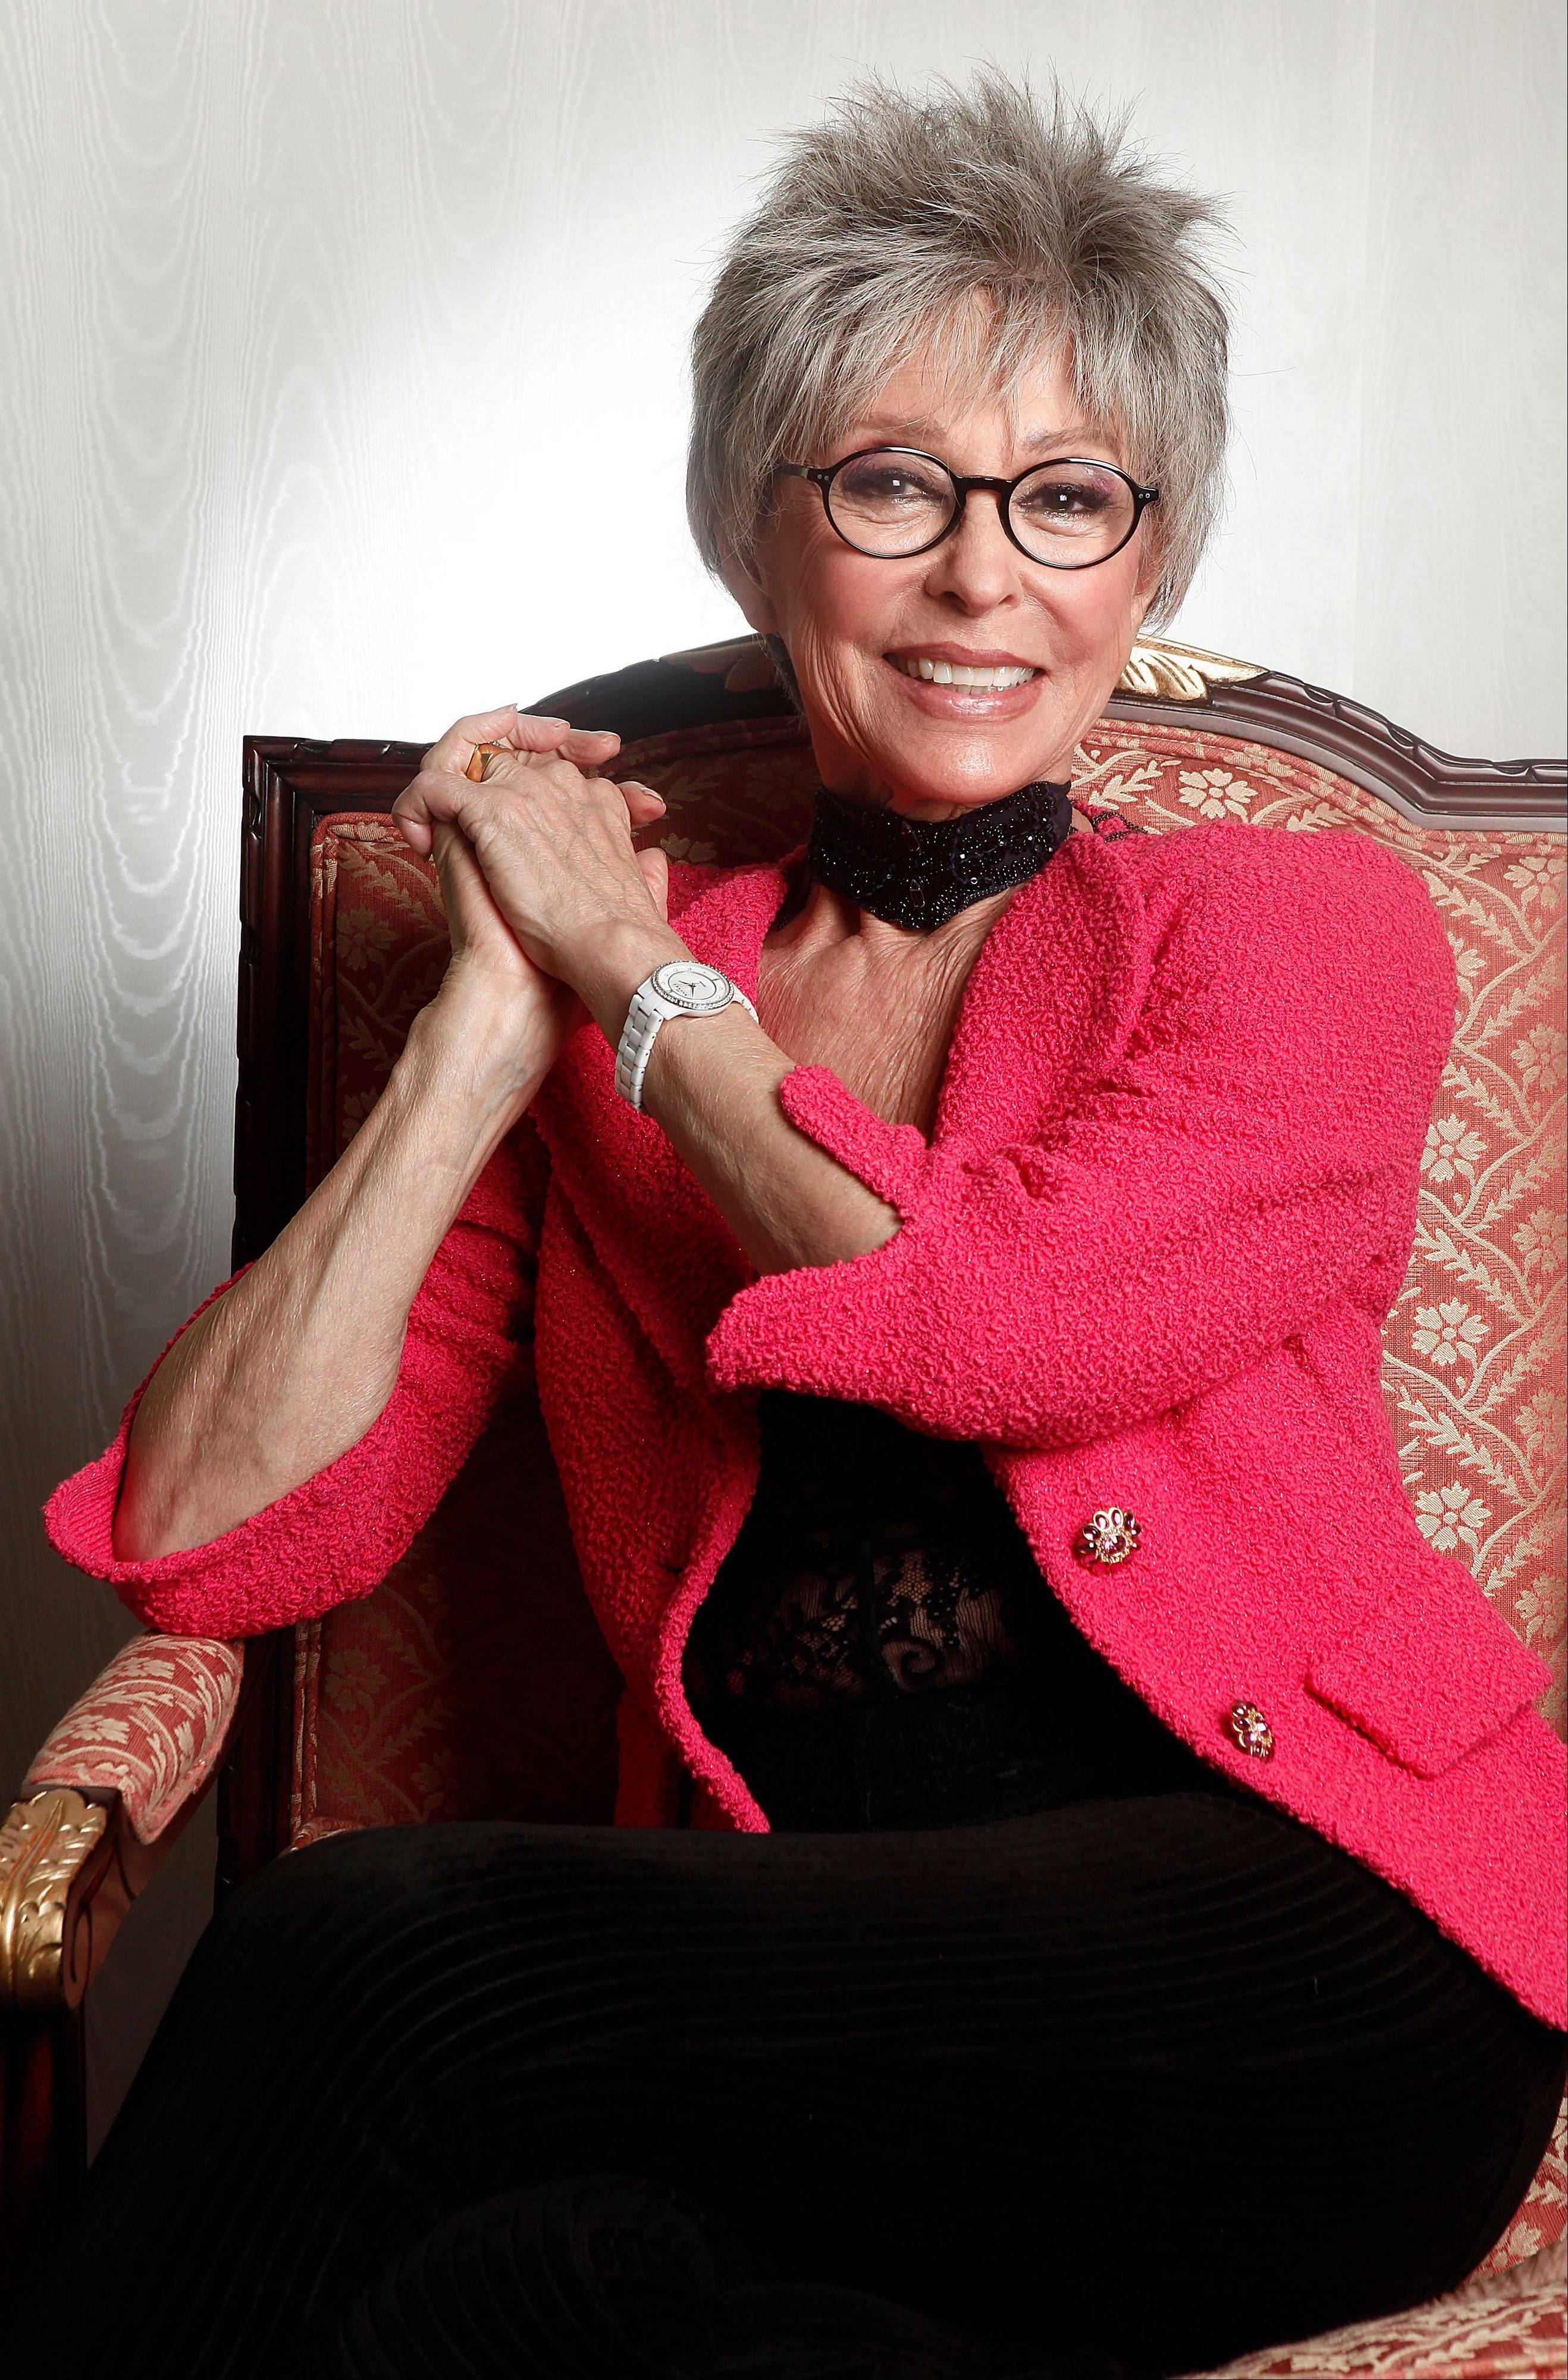 Rita Moreno will receive SAG-AFTRA's Life Achievement Award for career achievement and humanitarian accomplishment at the 2014 Screen Actors Guild Awards.